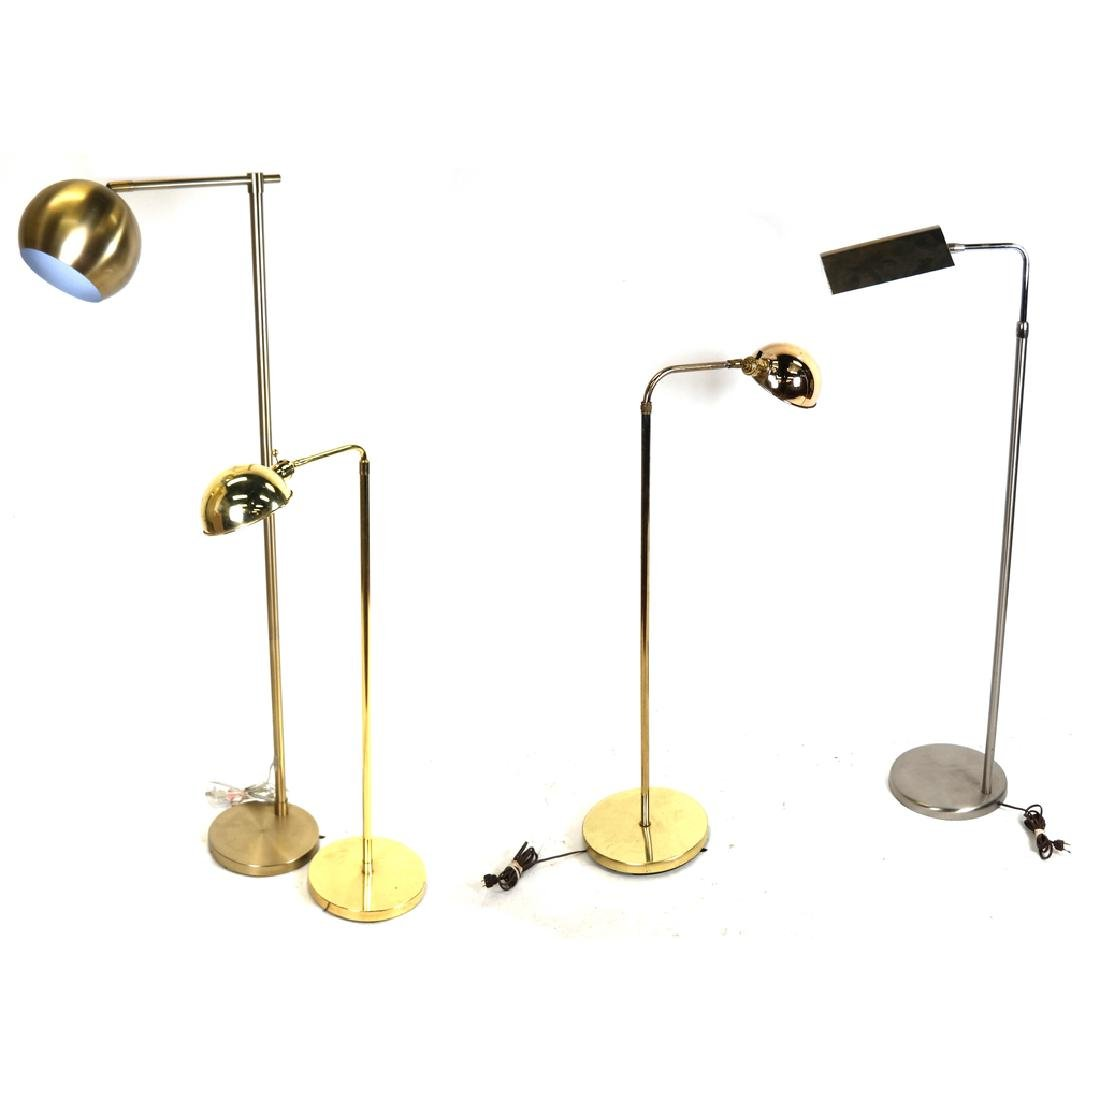 Four Contemporary Floor Lamps